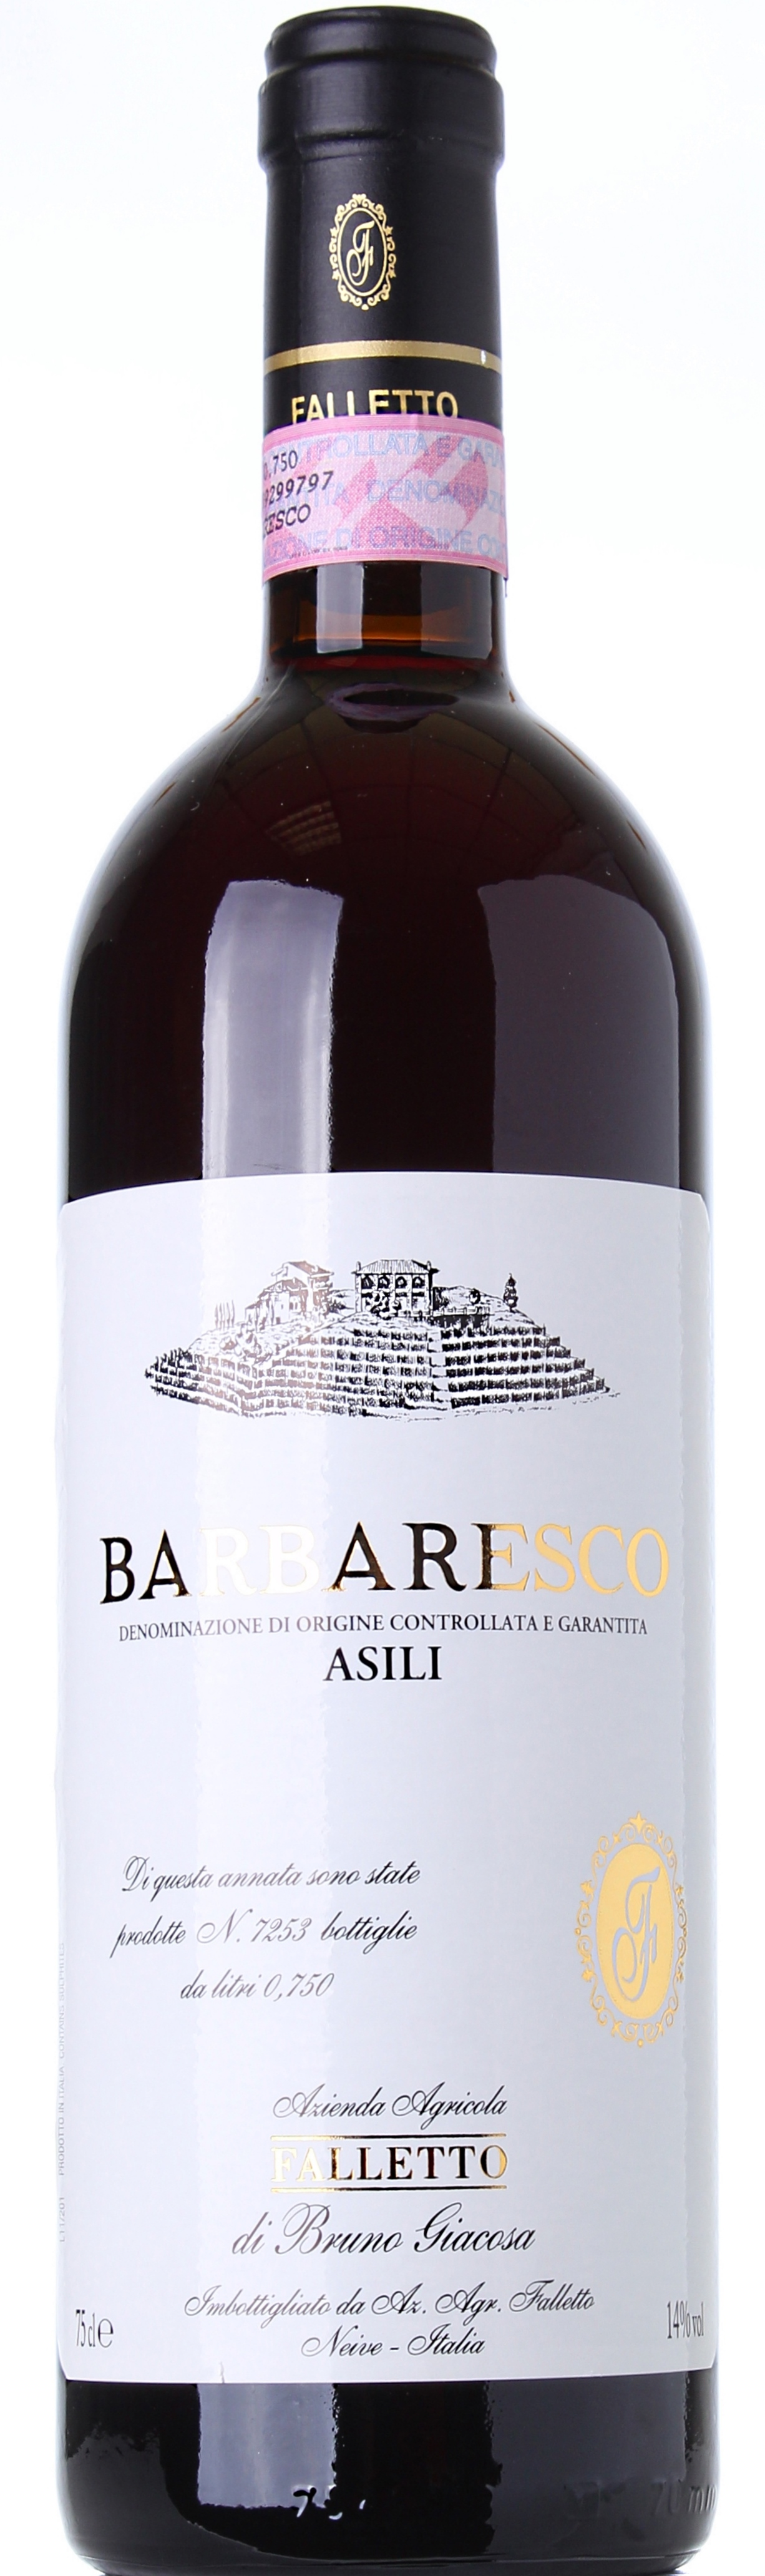 BRUNO GIACOSA BARBARESCO ASILI 2009